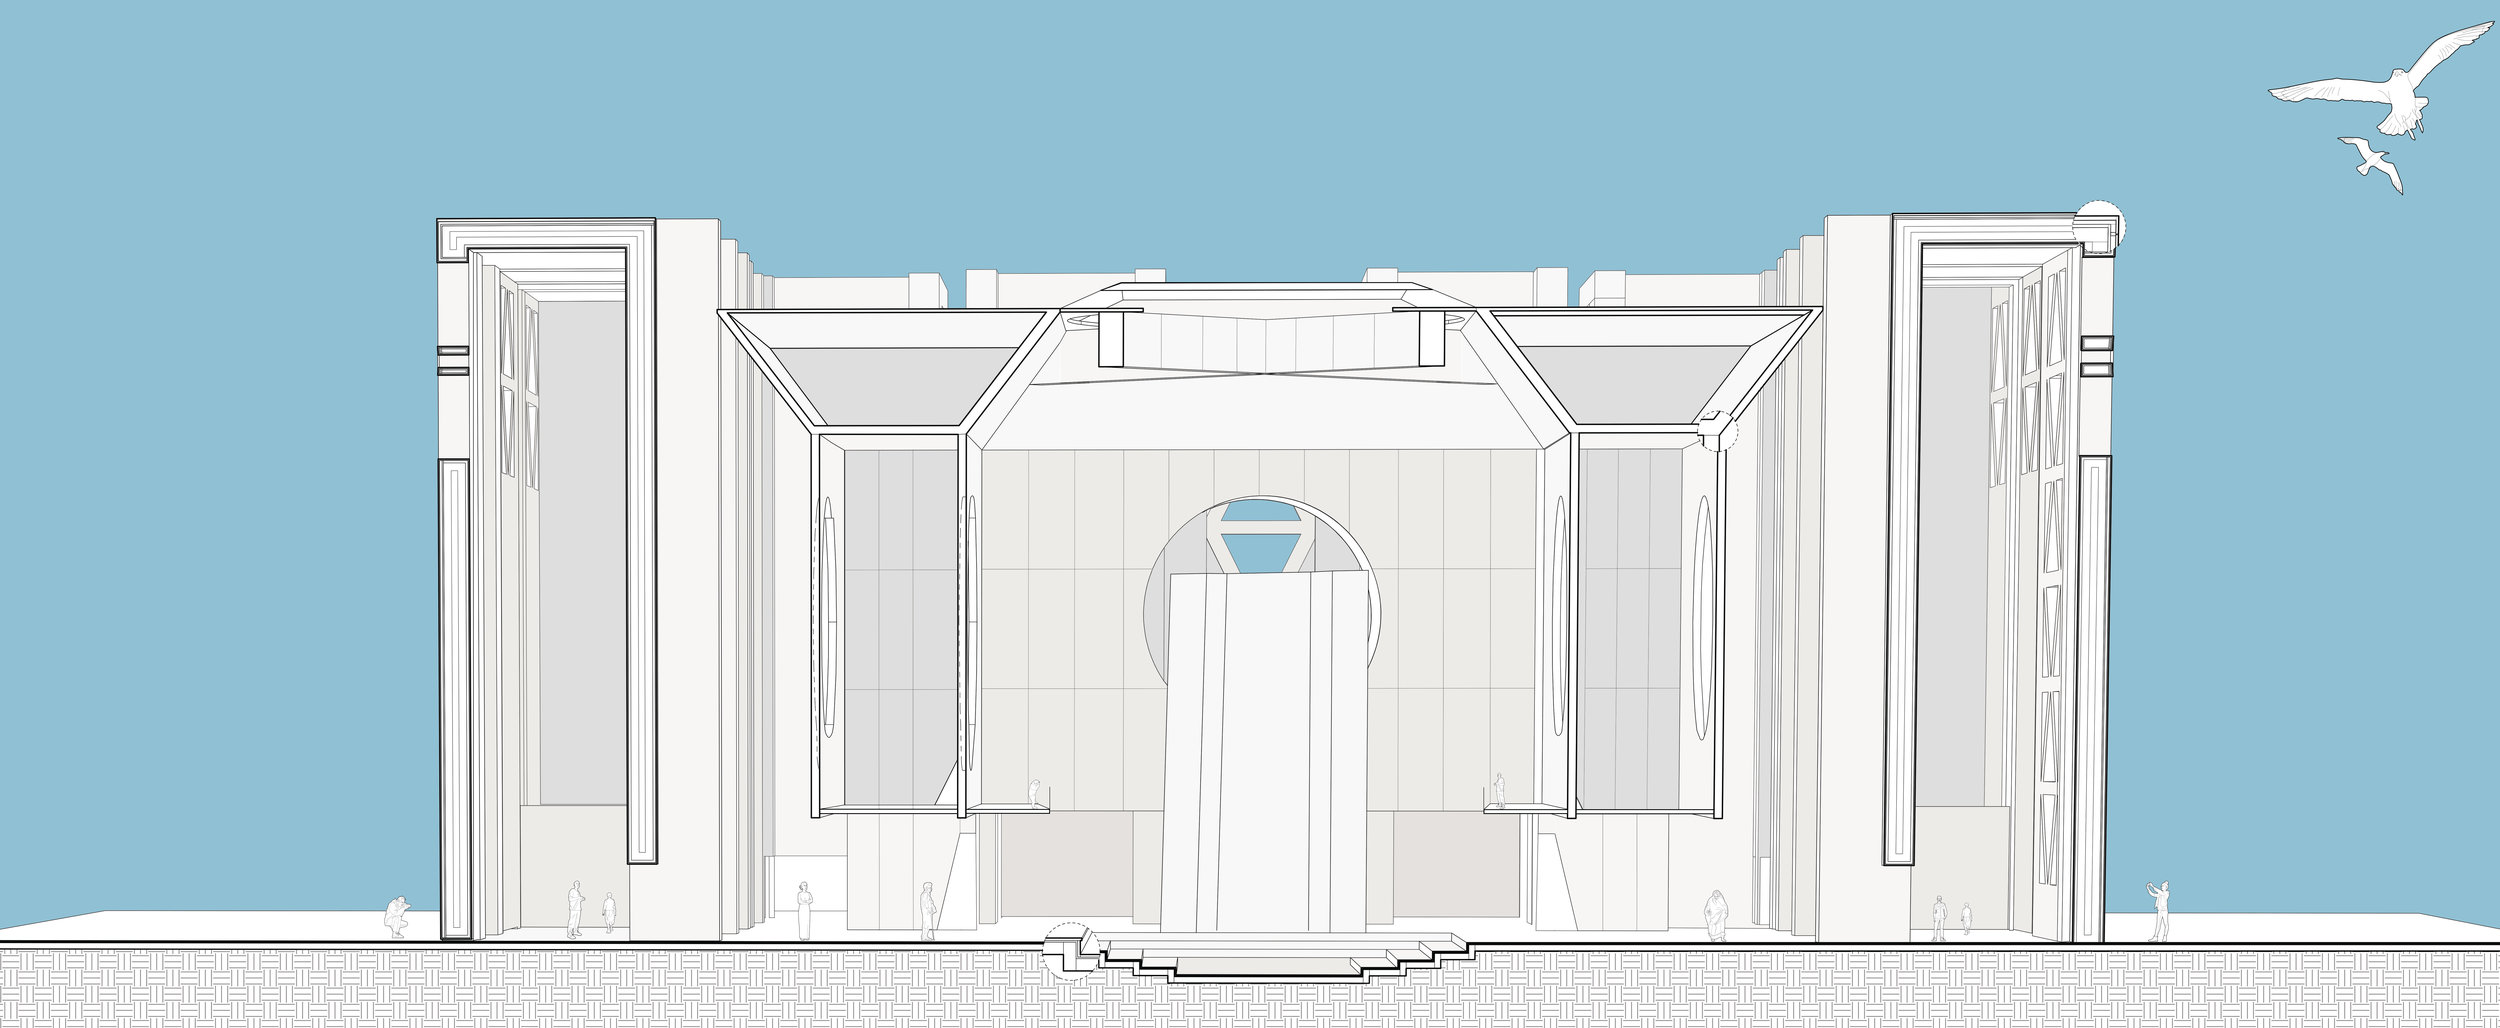 Sectional perspective drawing showing the quality of space.